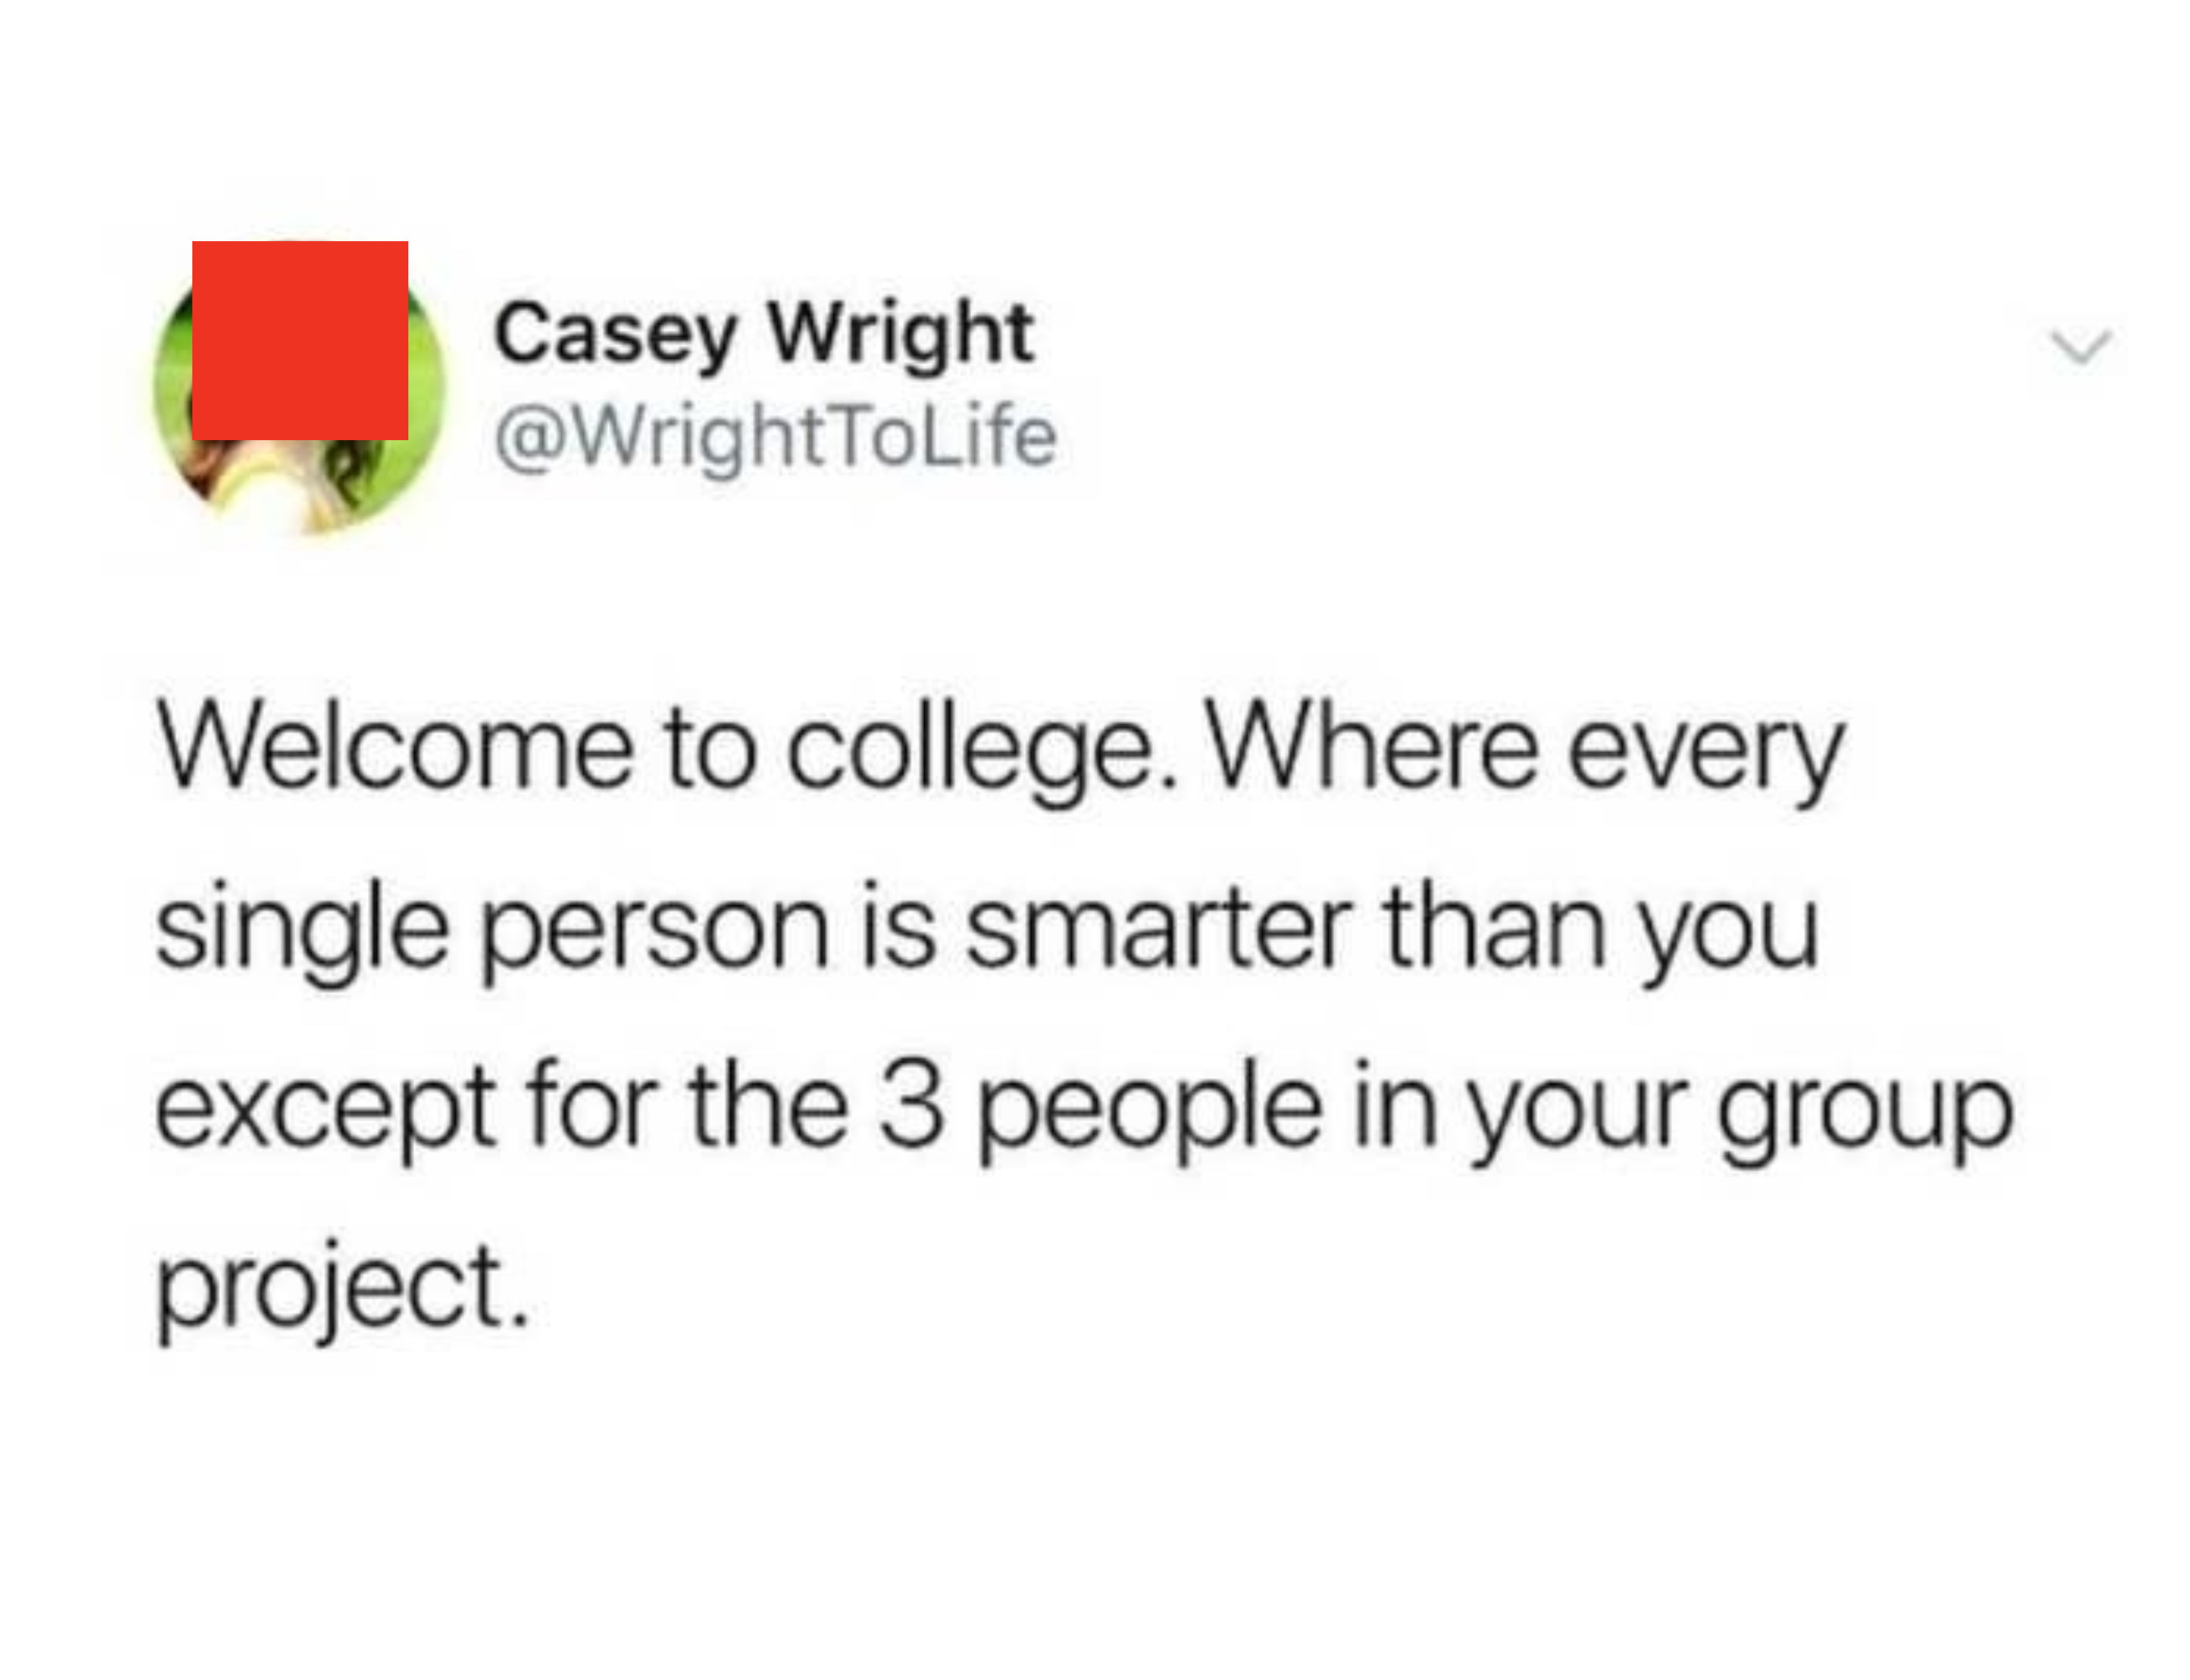 """Tweet reading, """"Welcome to college, where every single person is smarter than you except for the 3 people in your group project"""""""